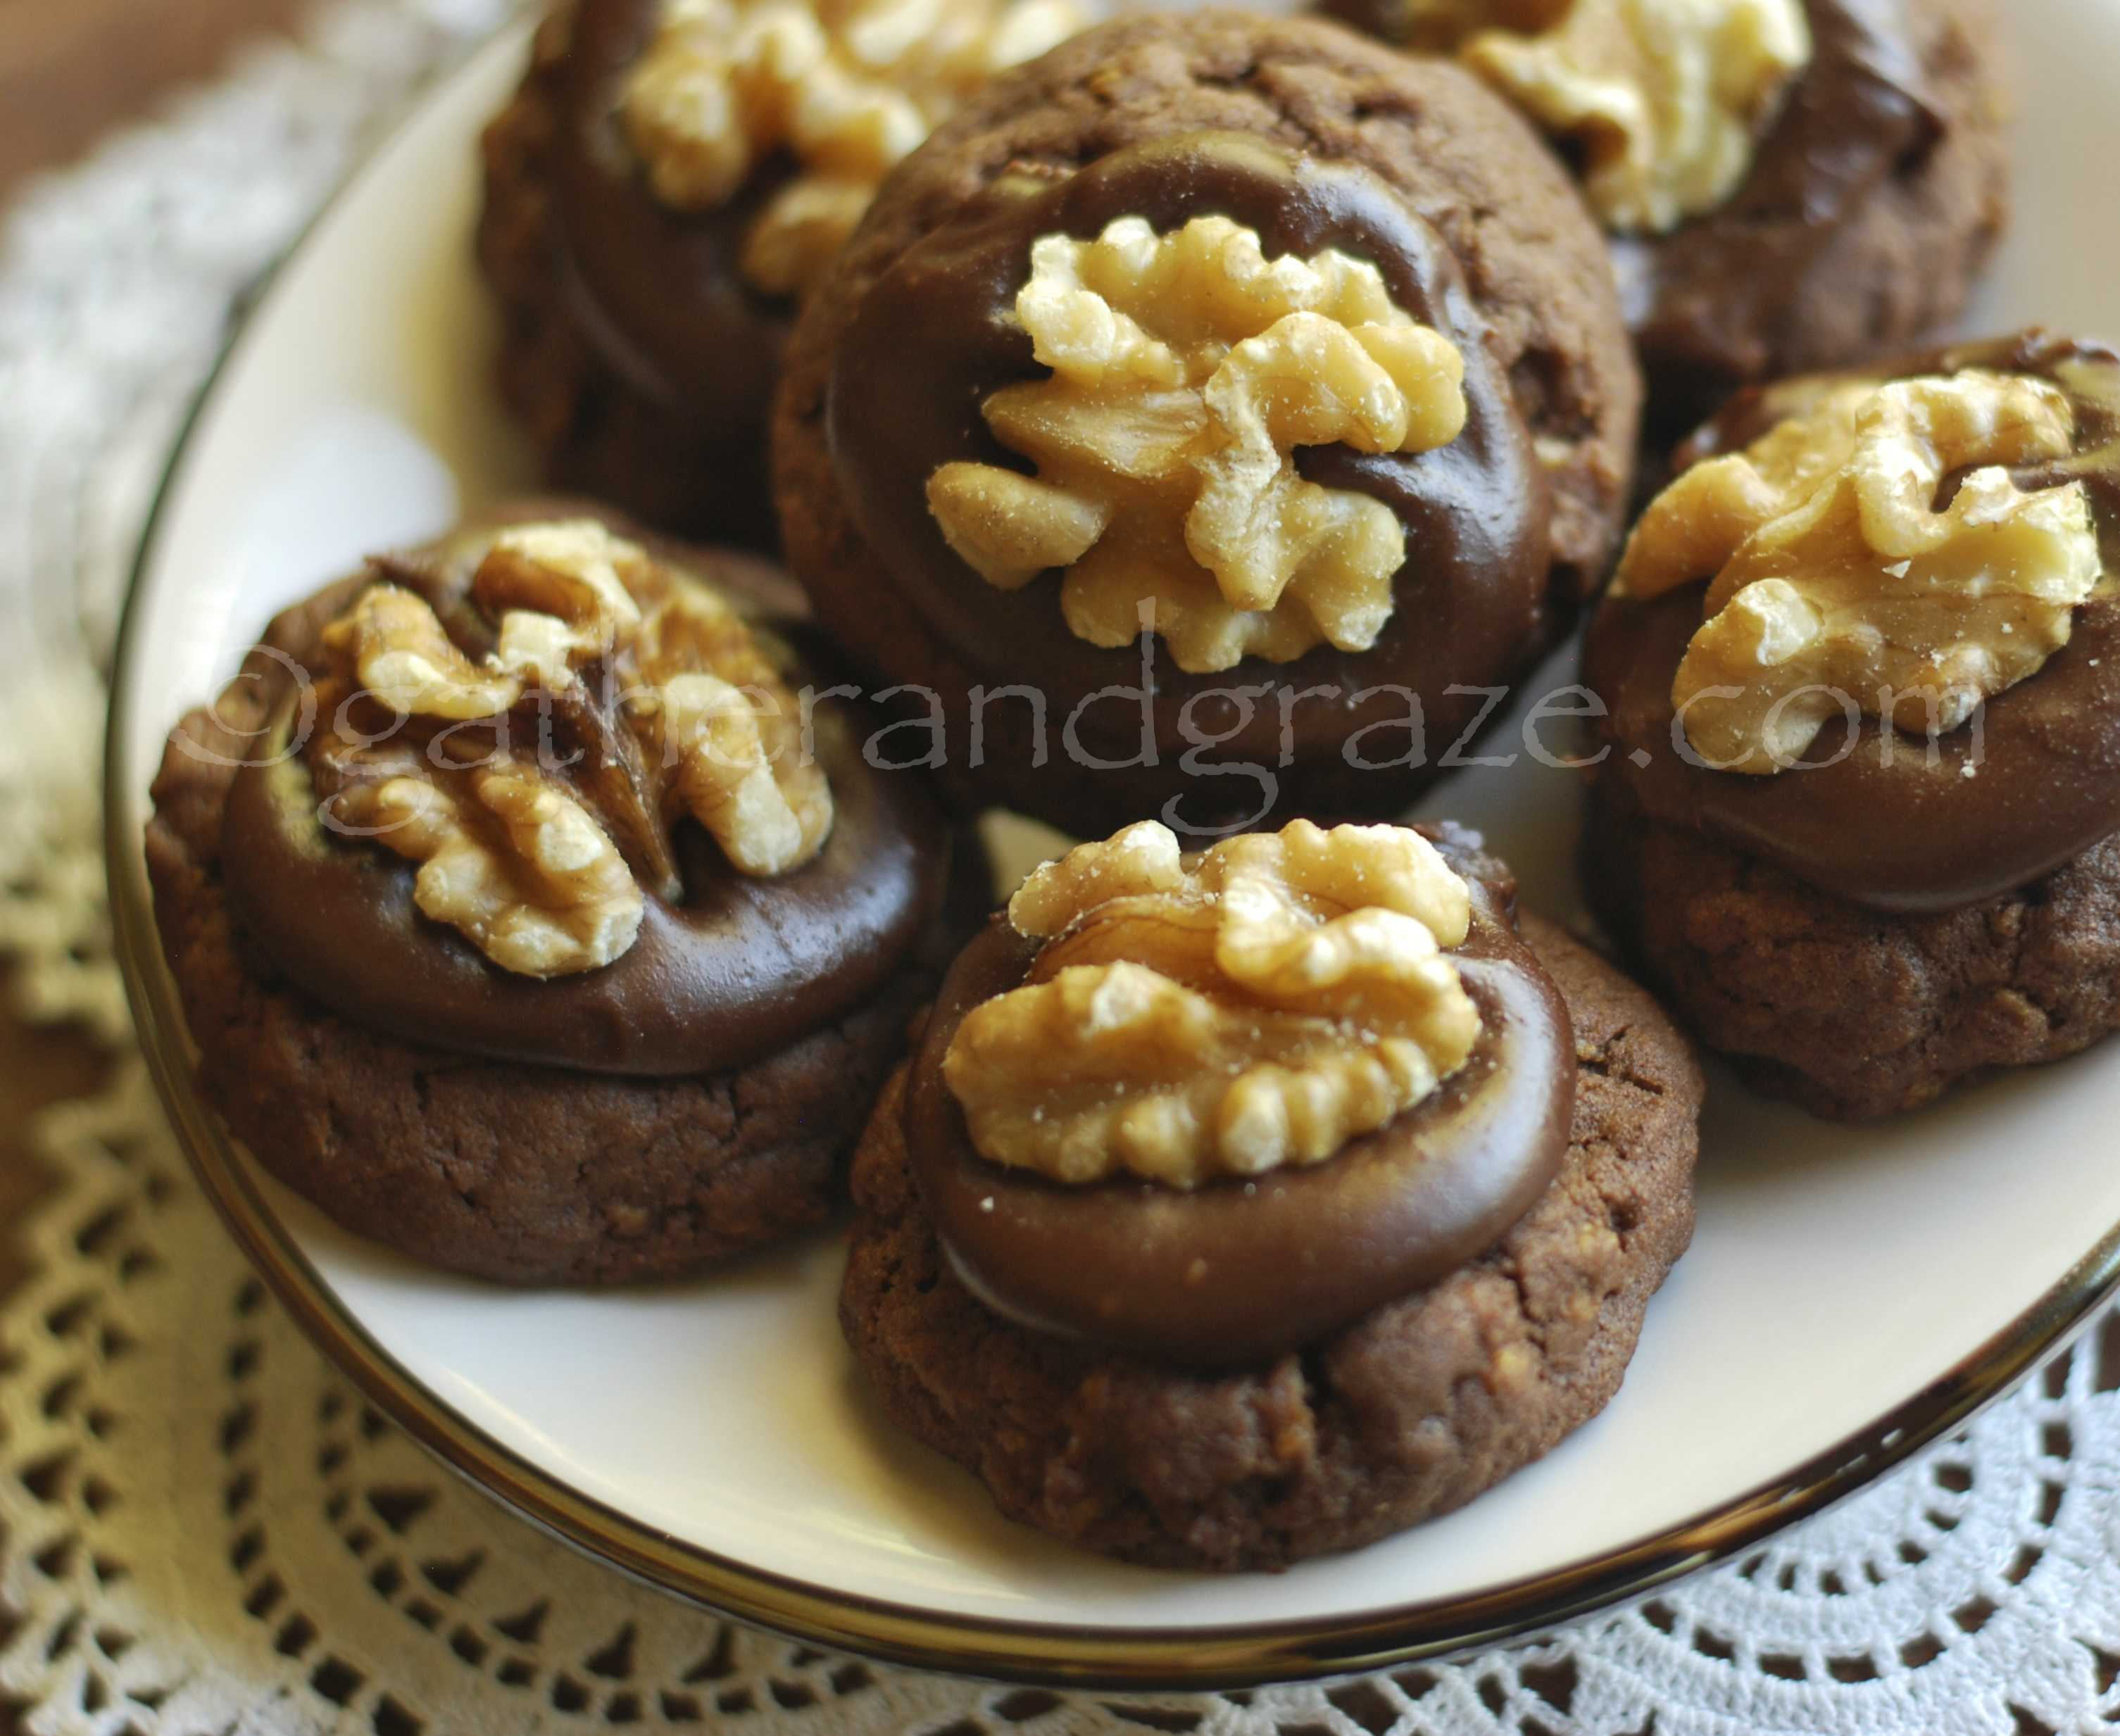 Image Result For New Zealand Afghan Biscuitco E Recipe